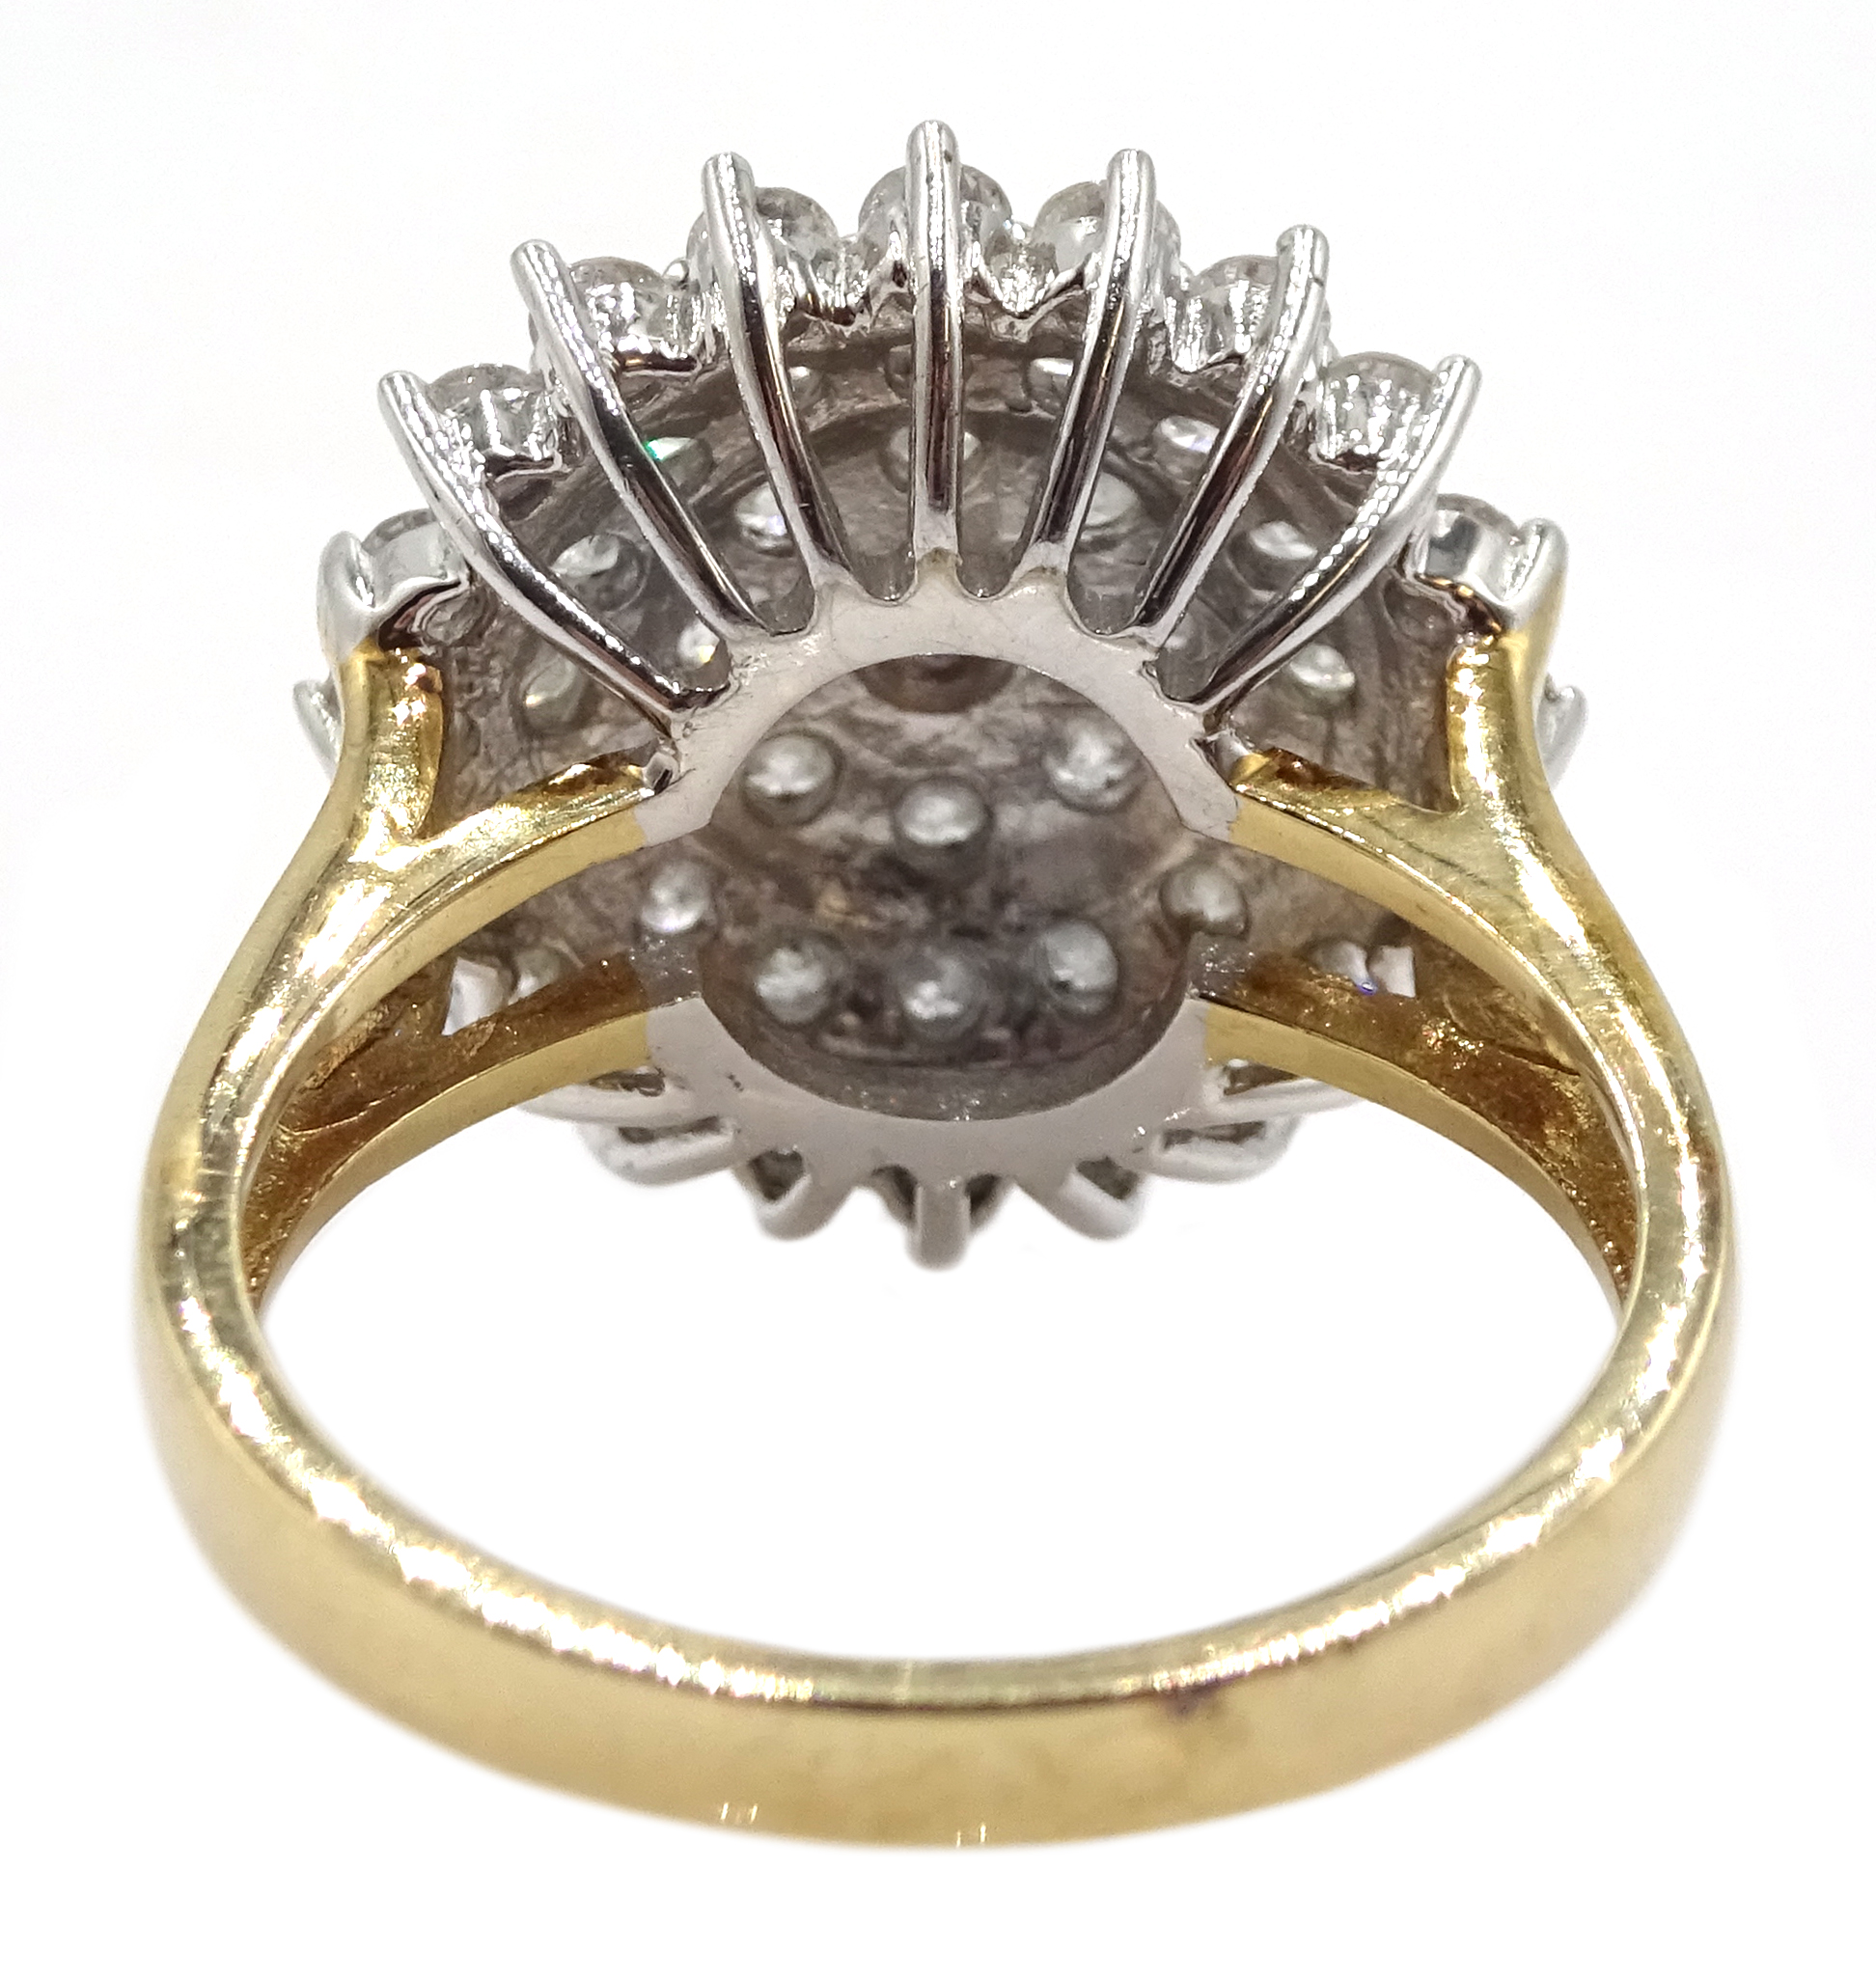 9ct gold cluster ring set with diamonds, diamond total weight approx 2.00 carat, free UK mainland - Image 6 of 6